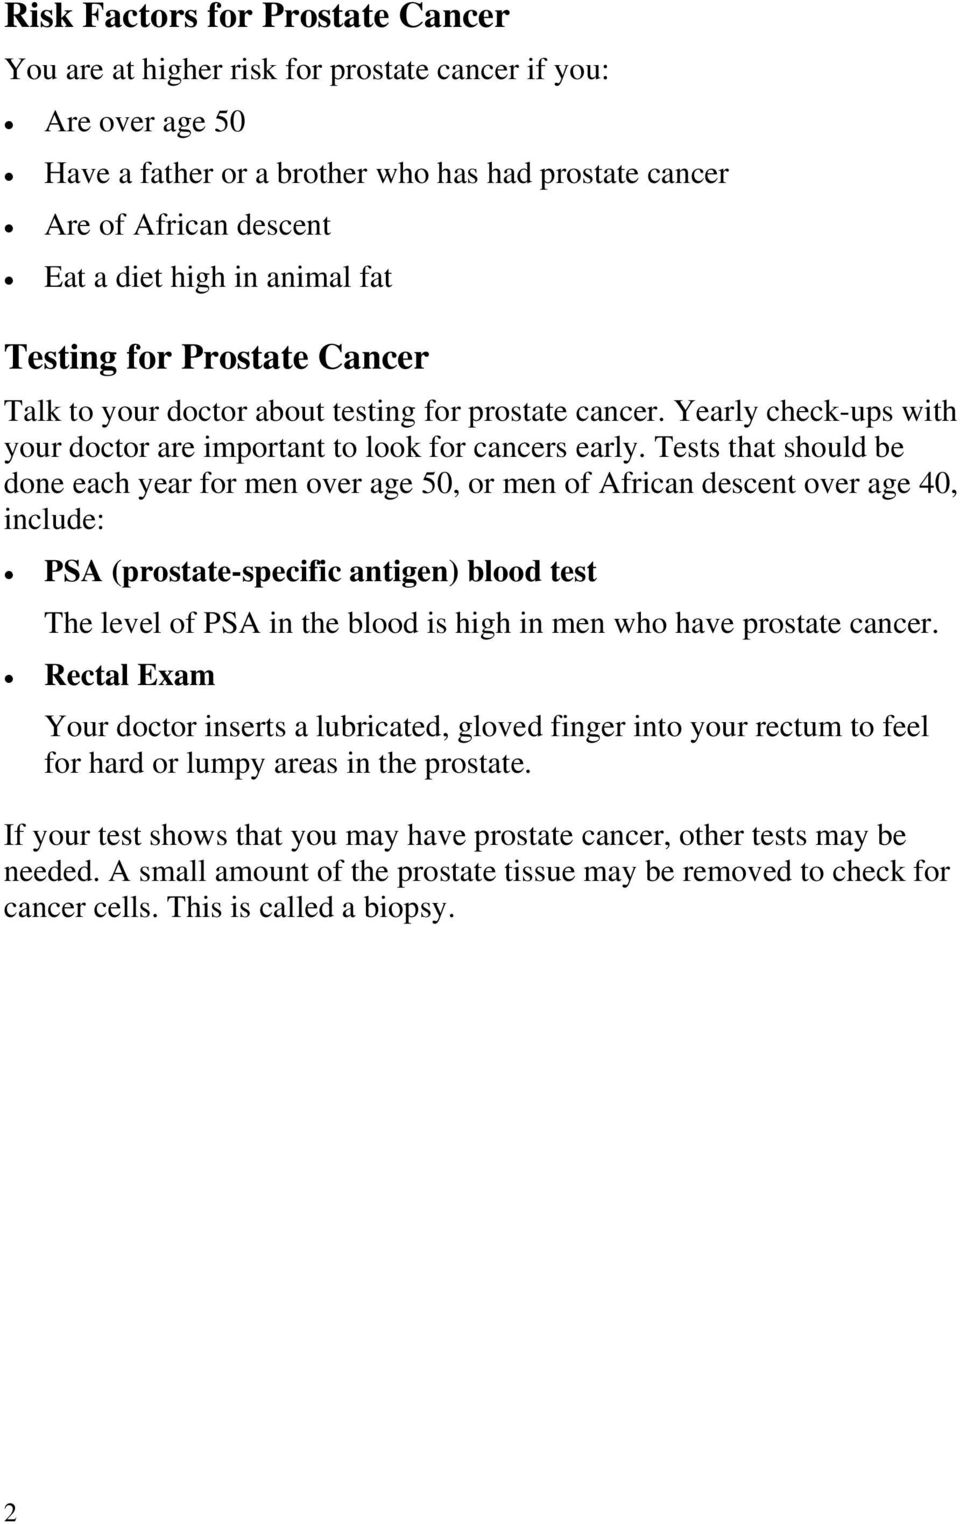 Tests that should be done each year for men over age 50, or men of African descent over age 40, include: PSA (prostate-specific antigen) blood test The level of PSA in the blood is high in men who